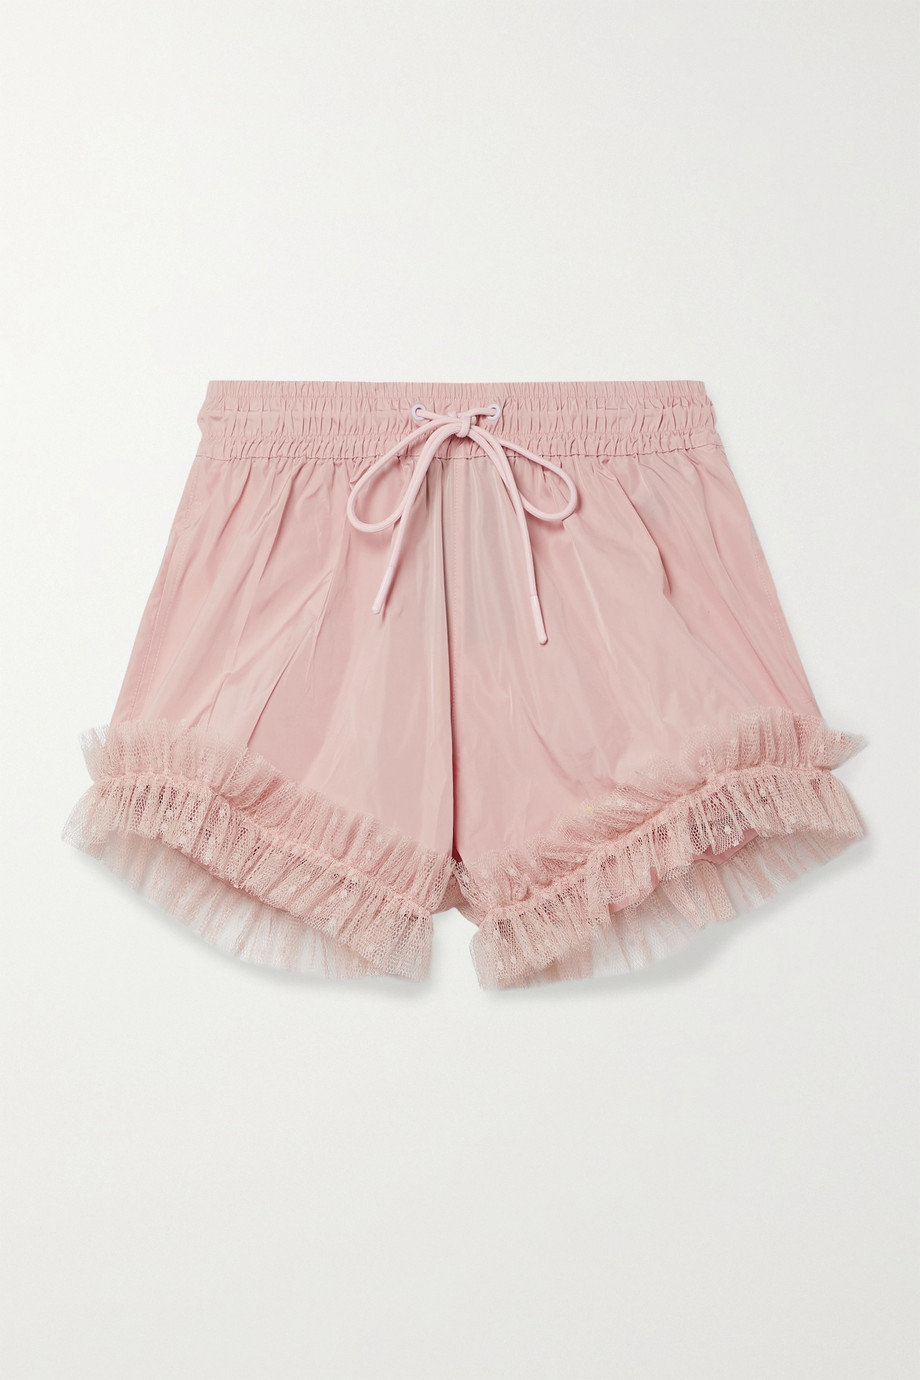 REDVALENTINO Ruffled point d'esprit tulle-trimmed taffeta shorts